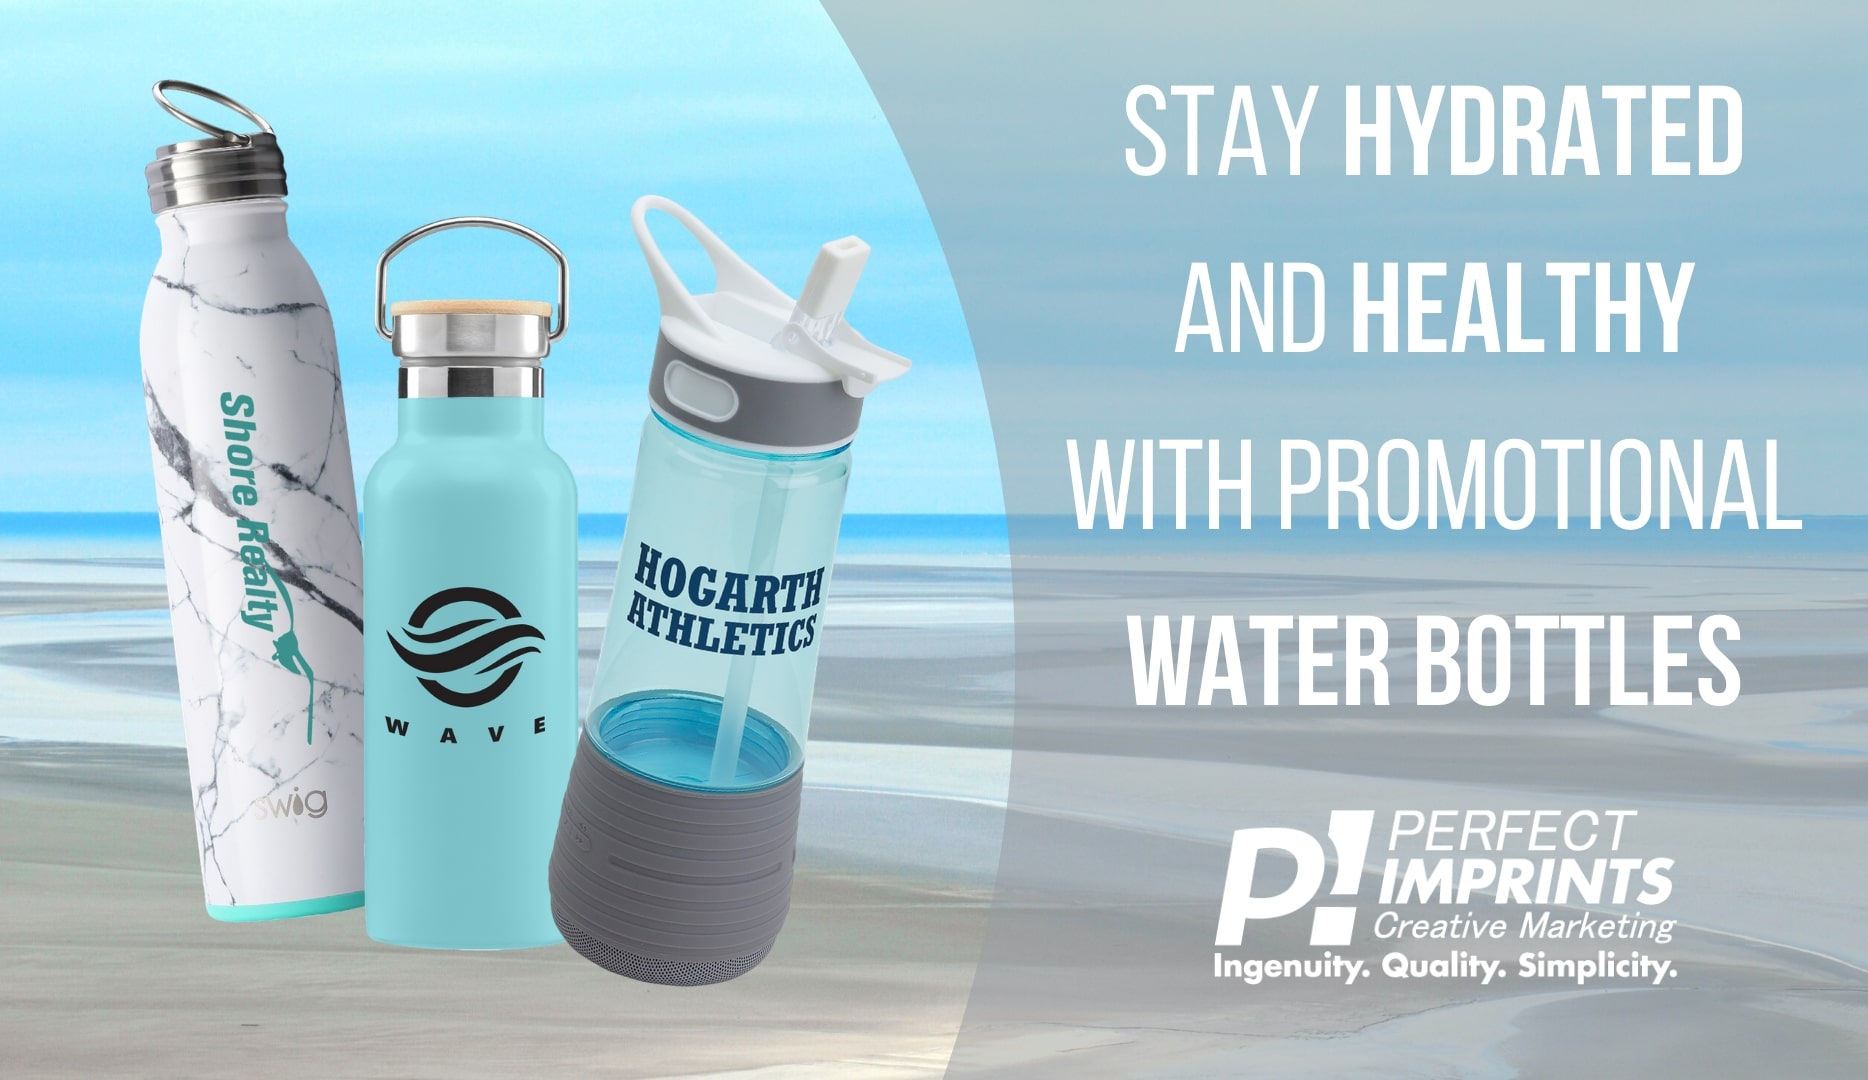 Stay Hydrated and Healthy with Promotional Water Bottles